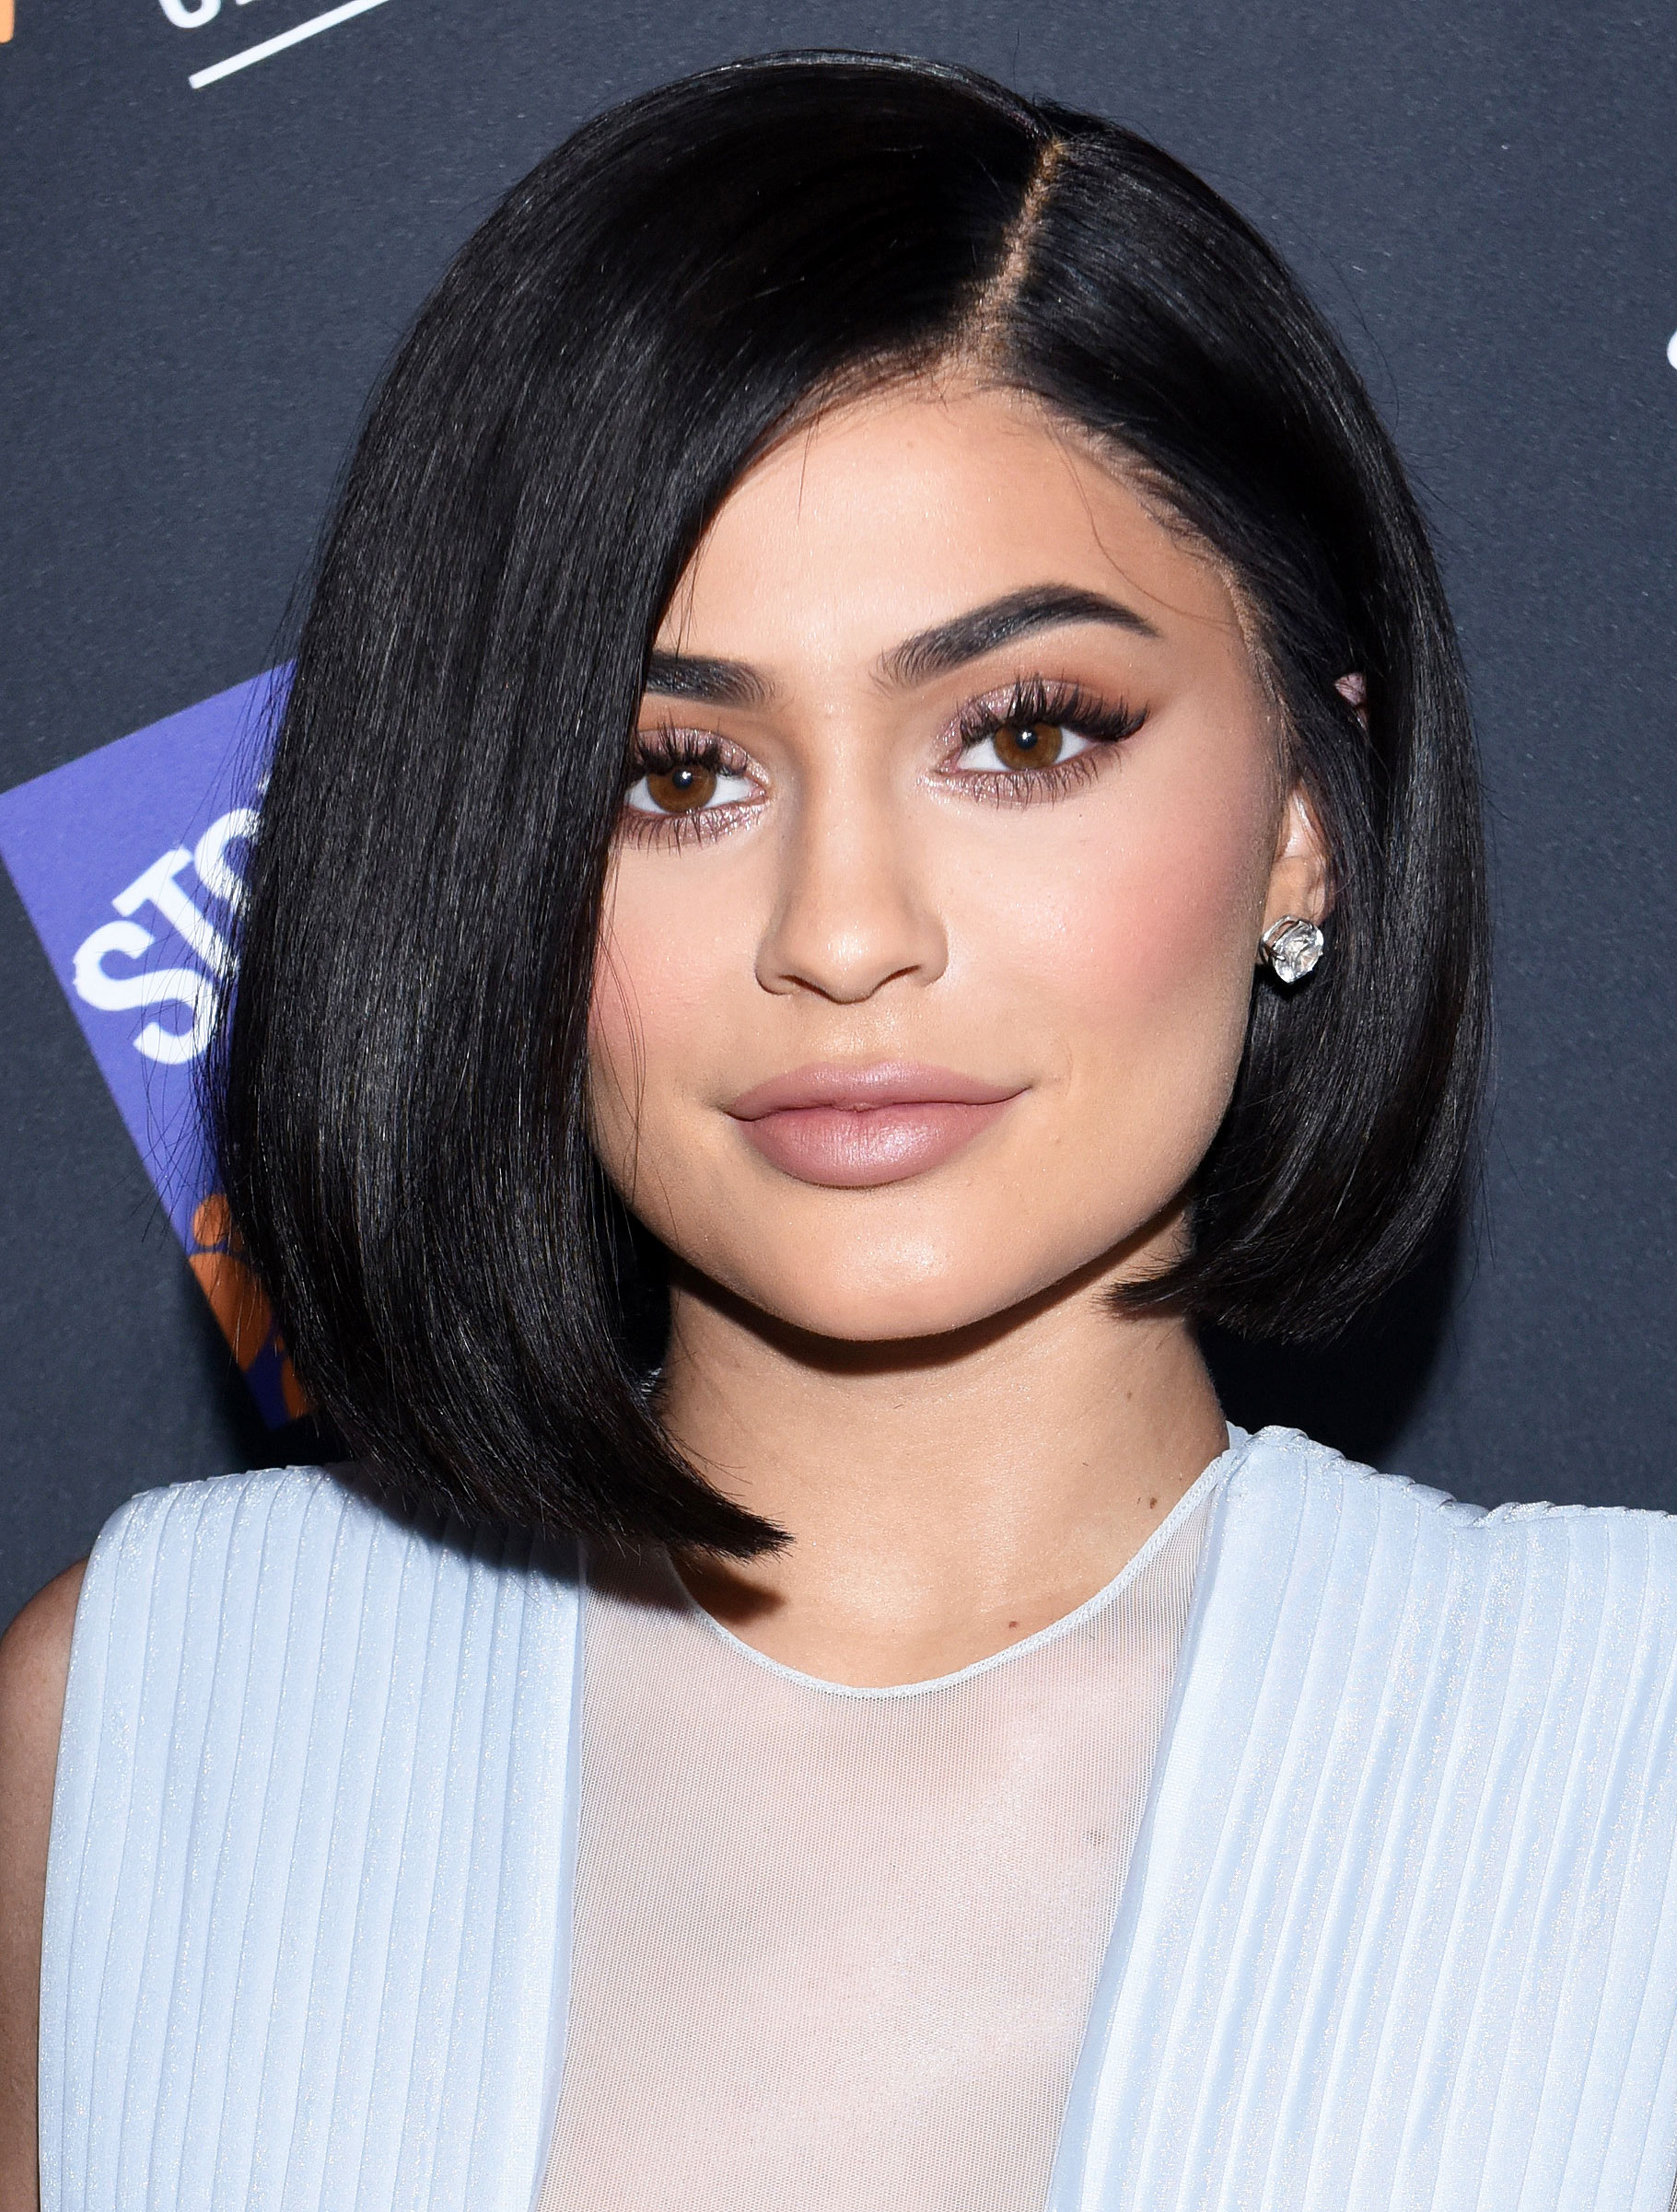 Kylie Jenner Rocks A Black Bob Hairstyle On The Red Carpet